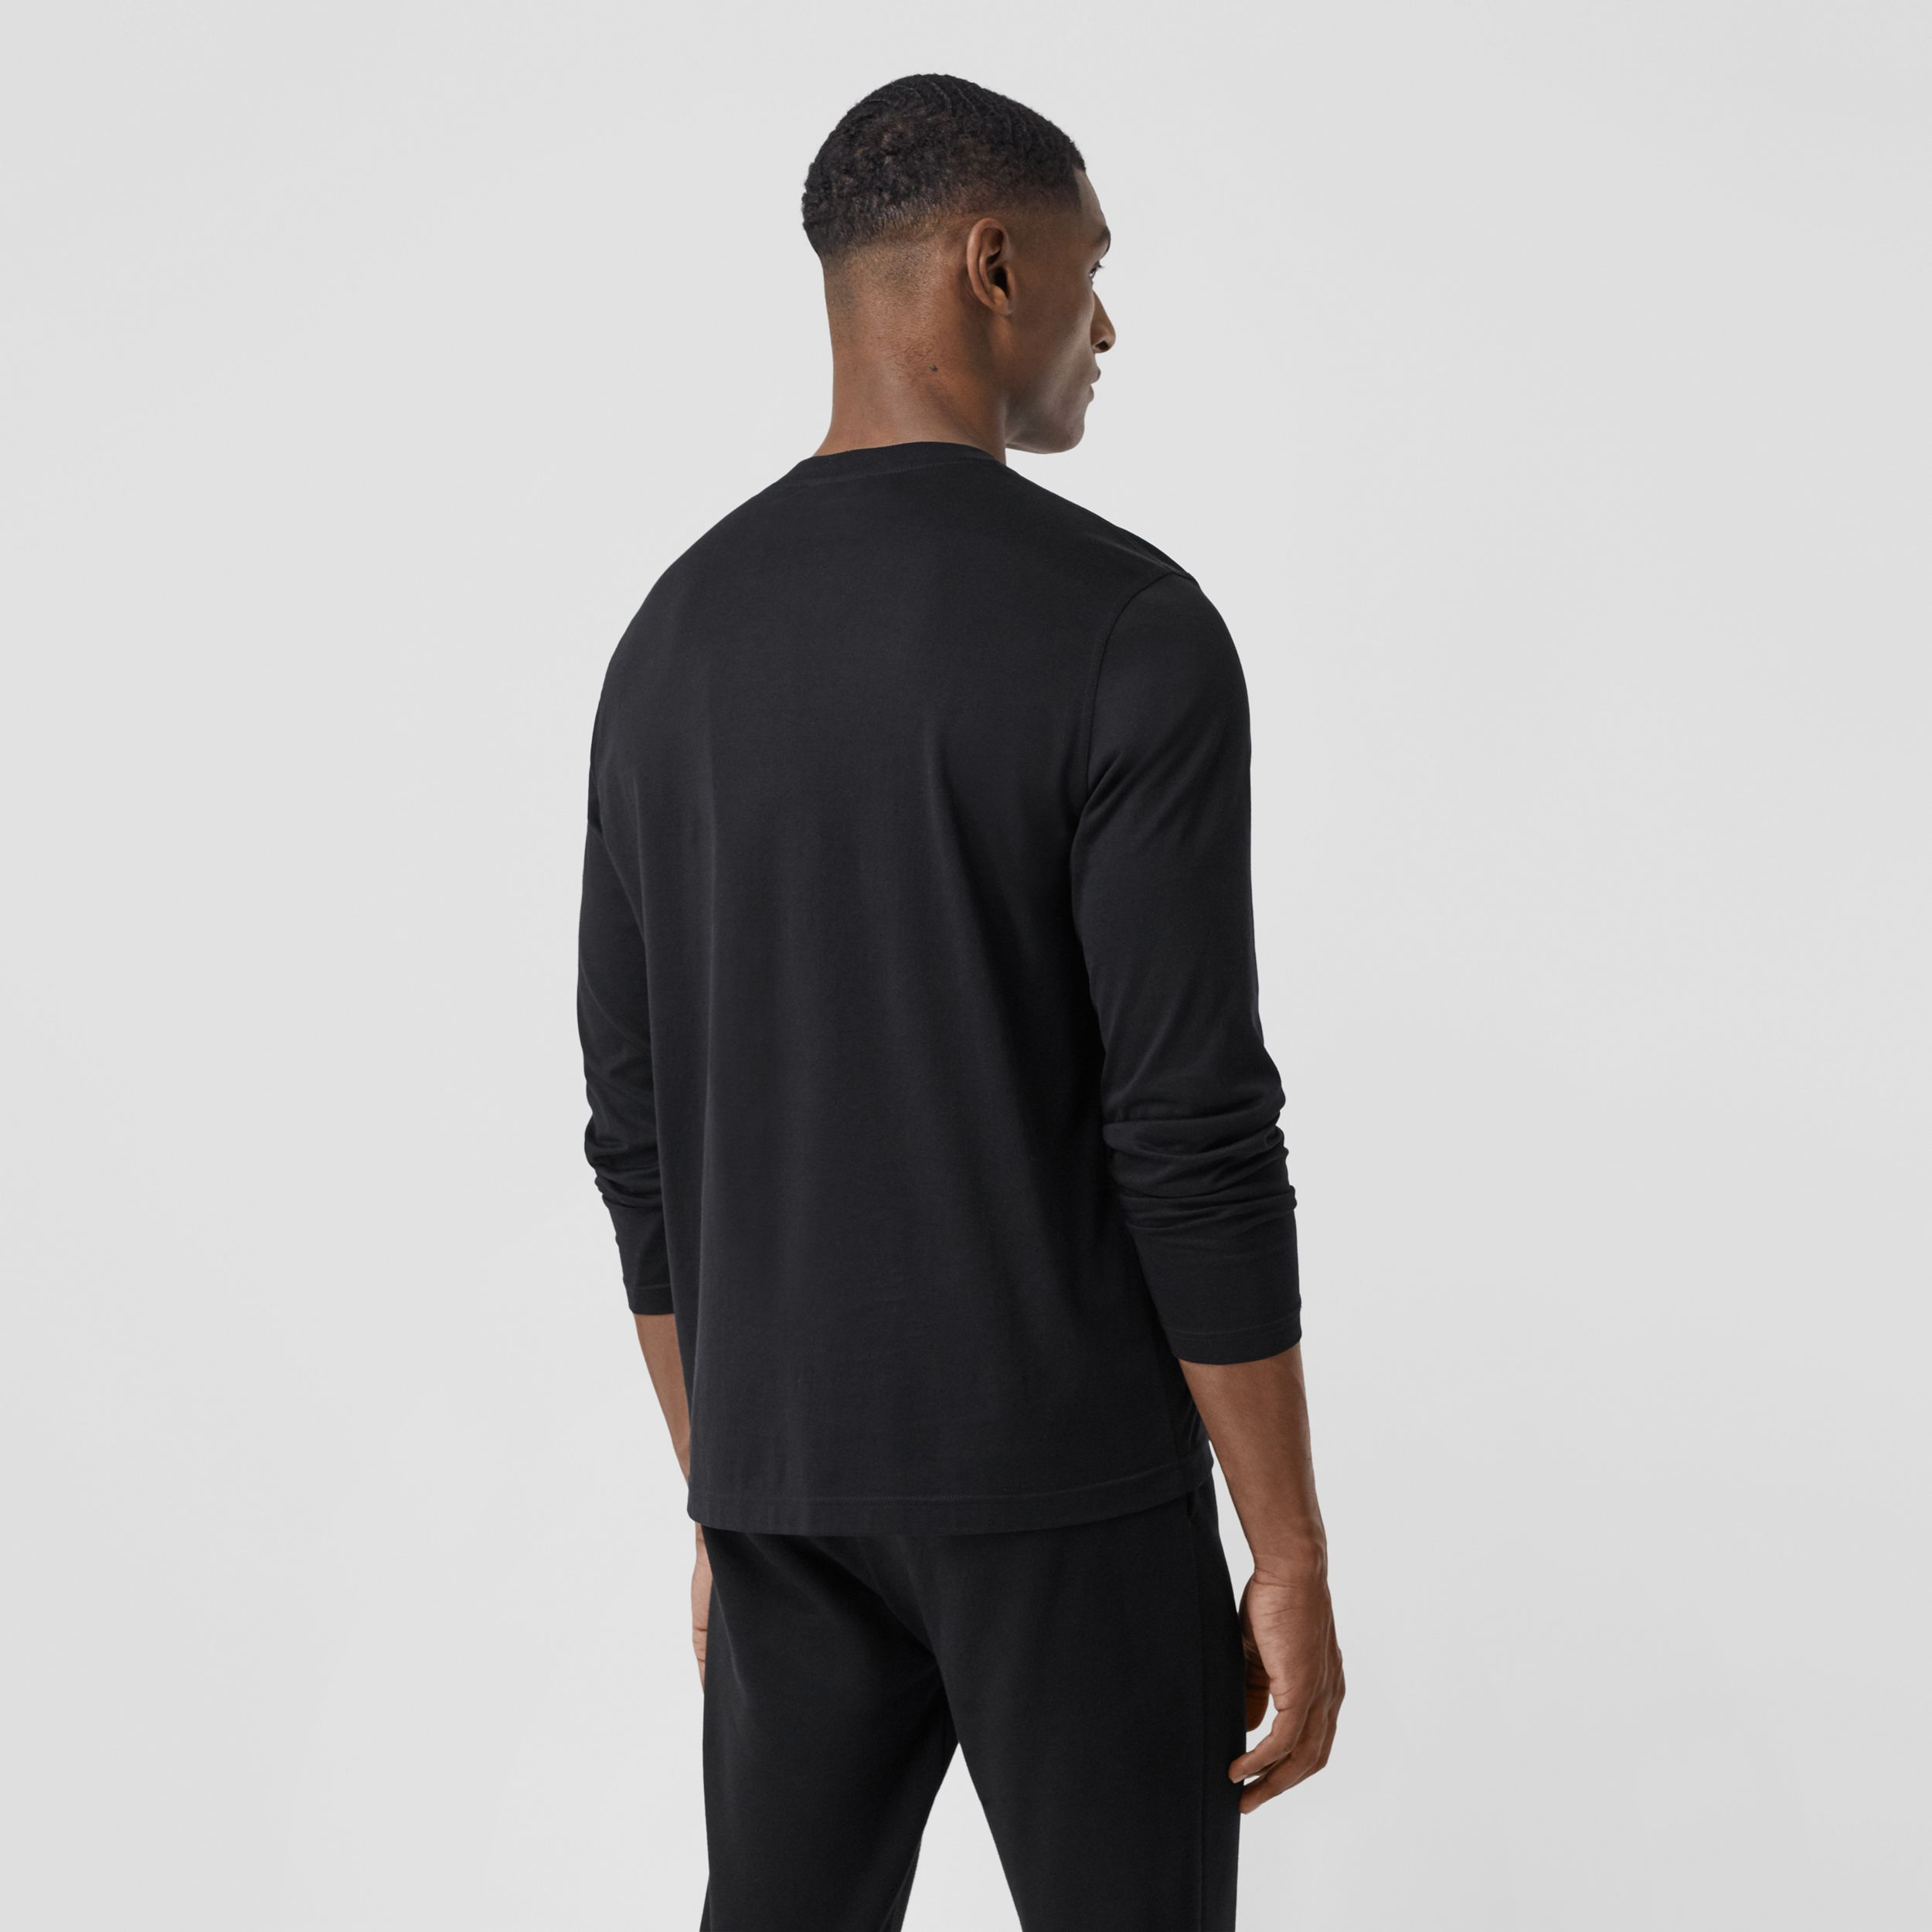 Long-sleeve Monogram Motif Cotton Top in Black - Men | Burberry Hong Kong S.A.R. - 3